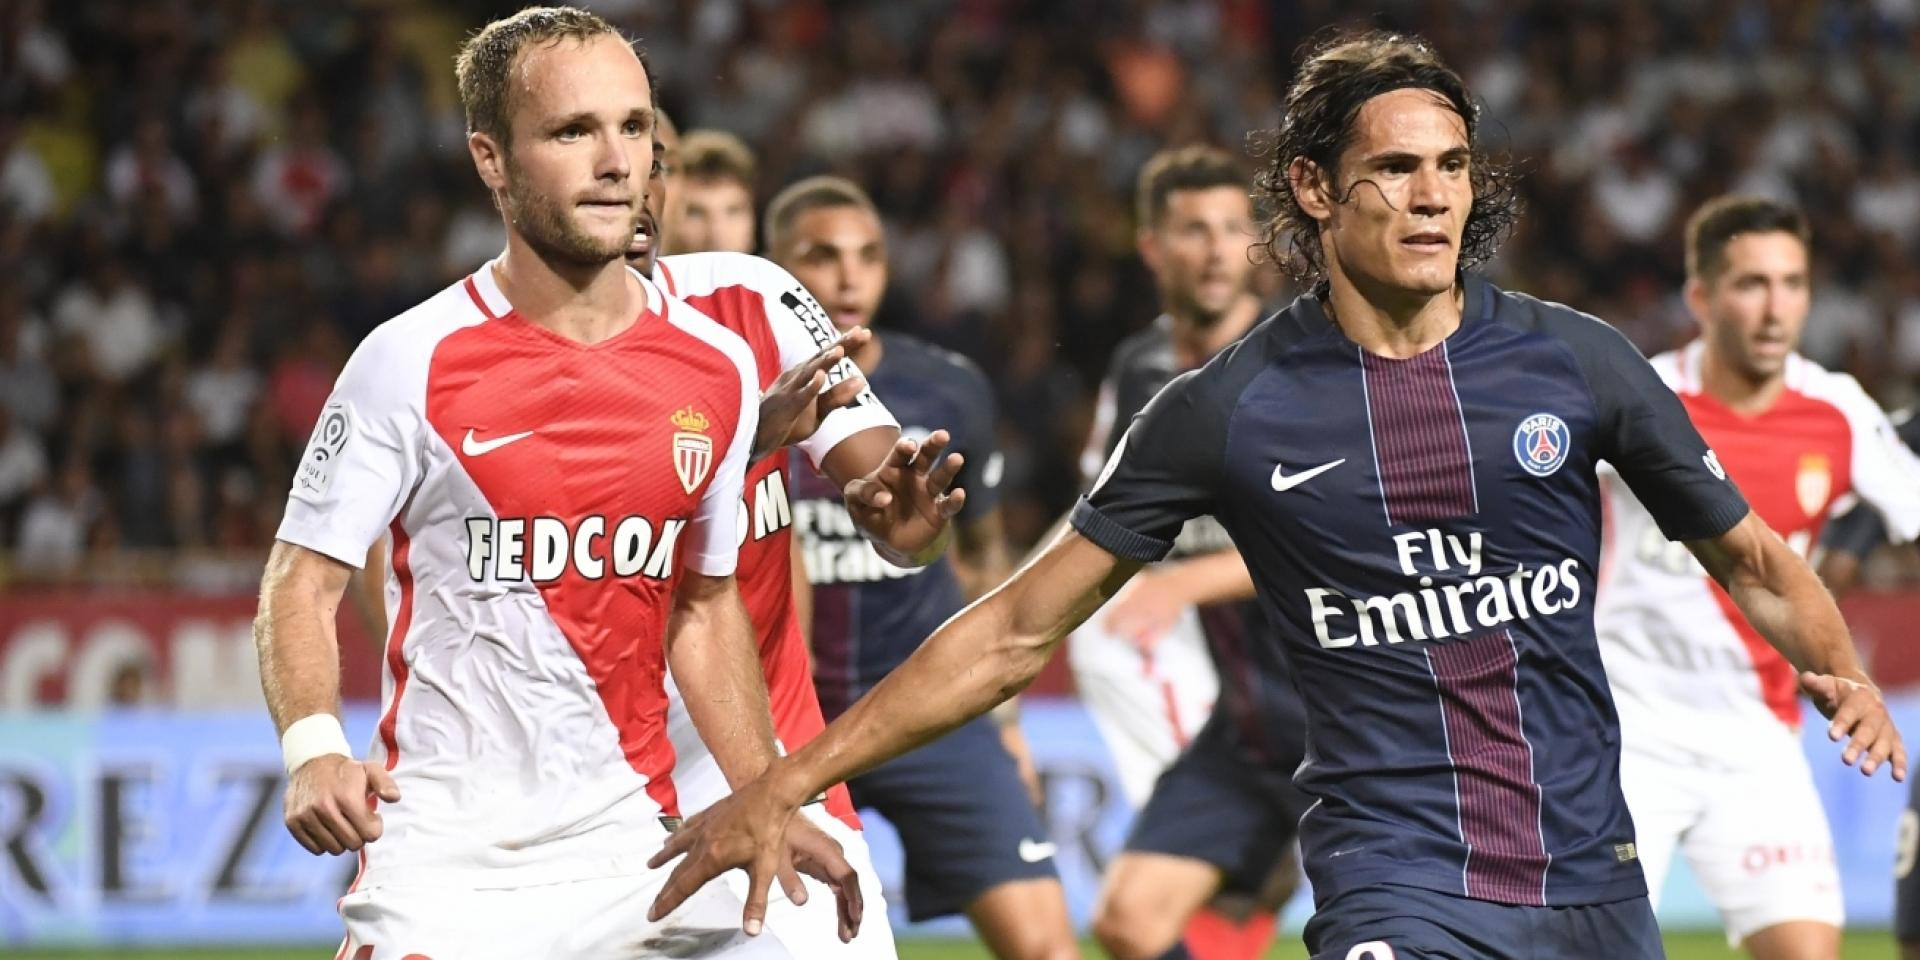 Voir la finale de la Coupe de la Ligue de football en direct sur France 2 : Vidéo streaming match PSG AS Monaco, résultat et replay buts